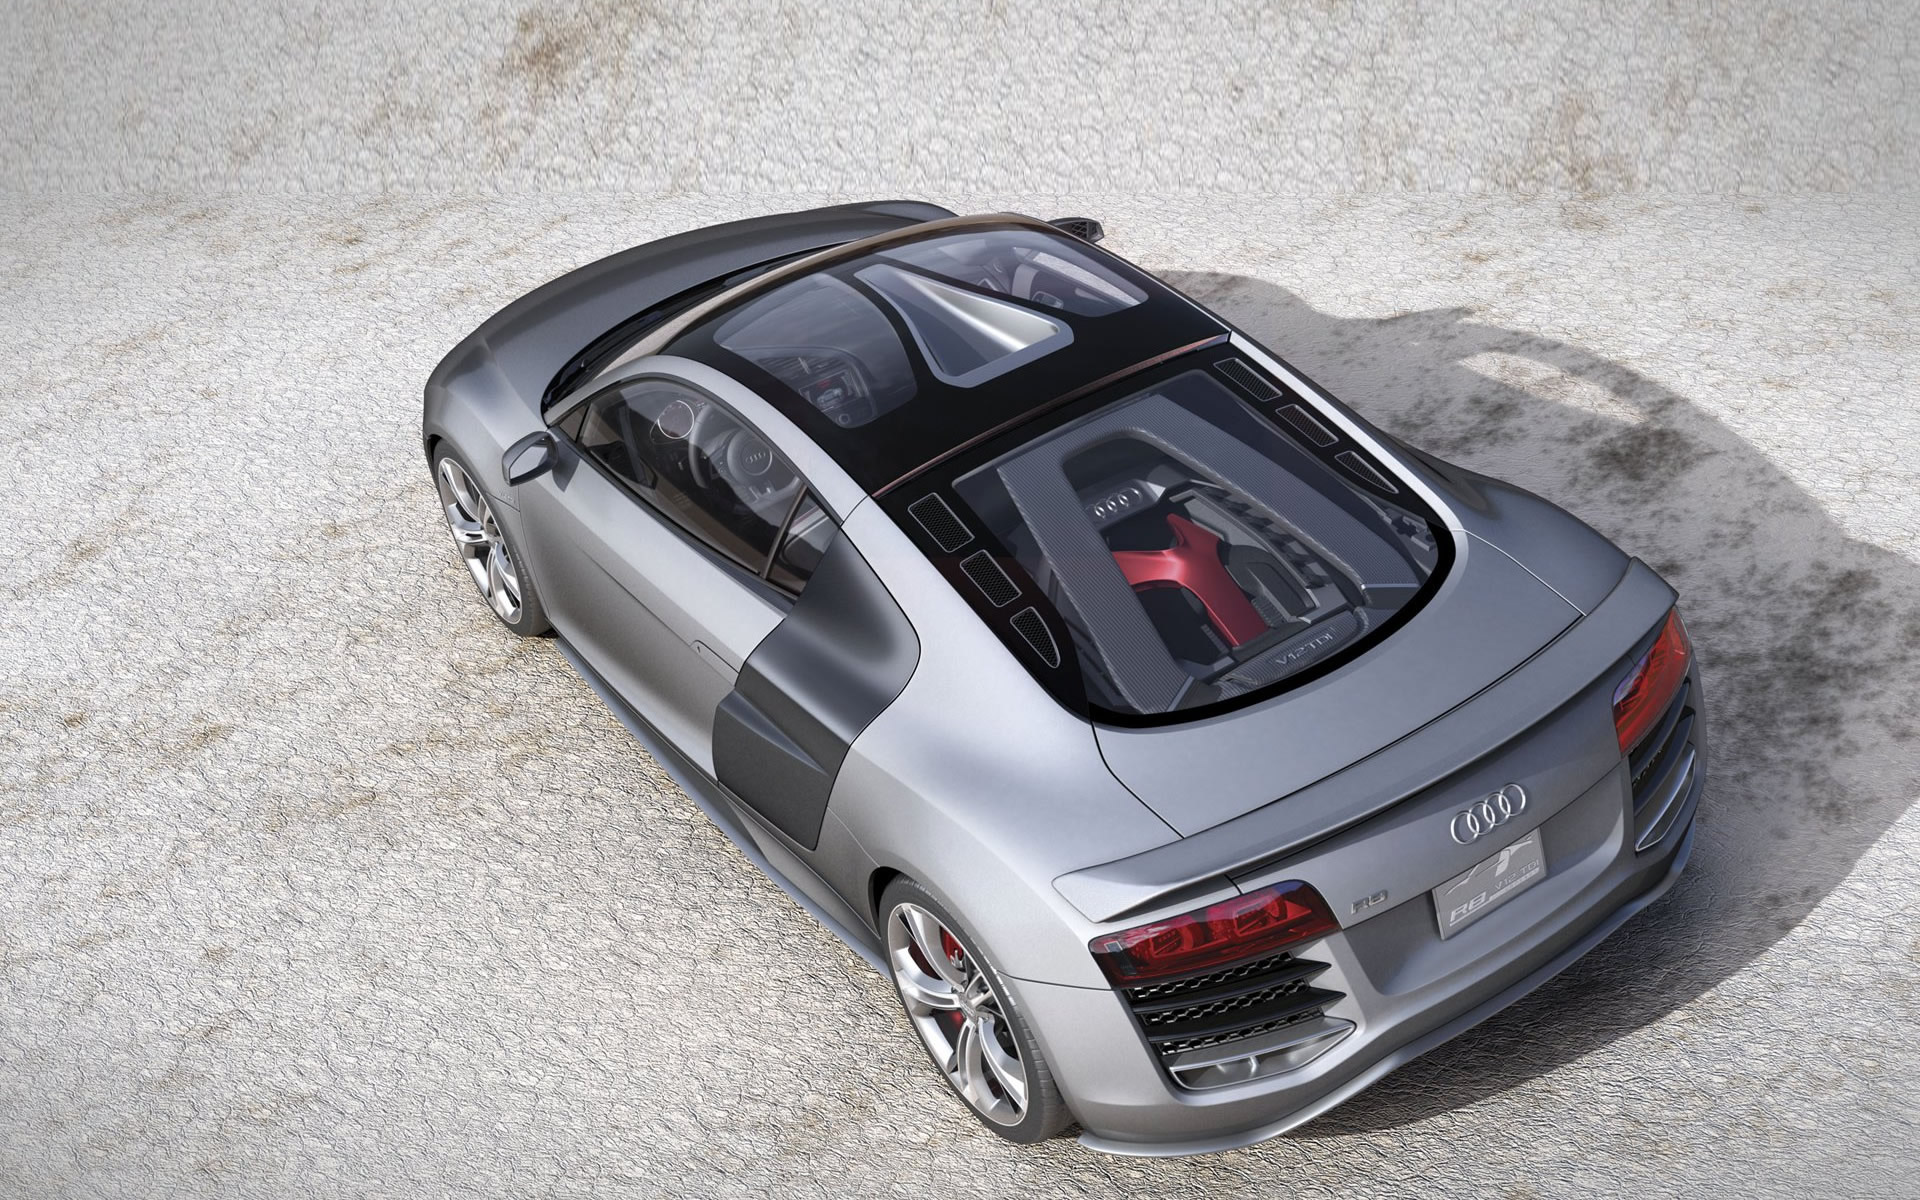 cars, vehicles, supercars, Audi R8, rear angle view - desktop wallpaper